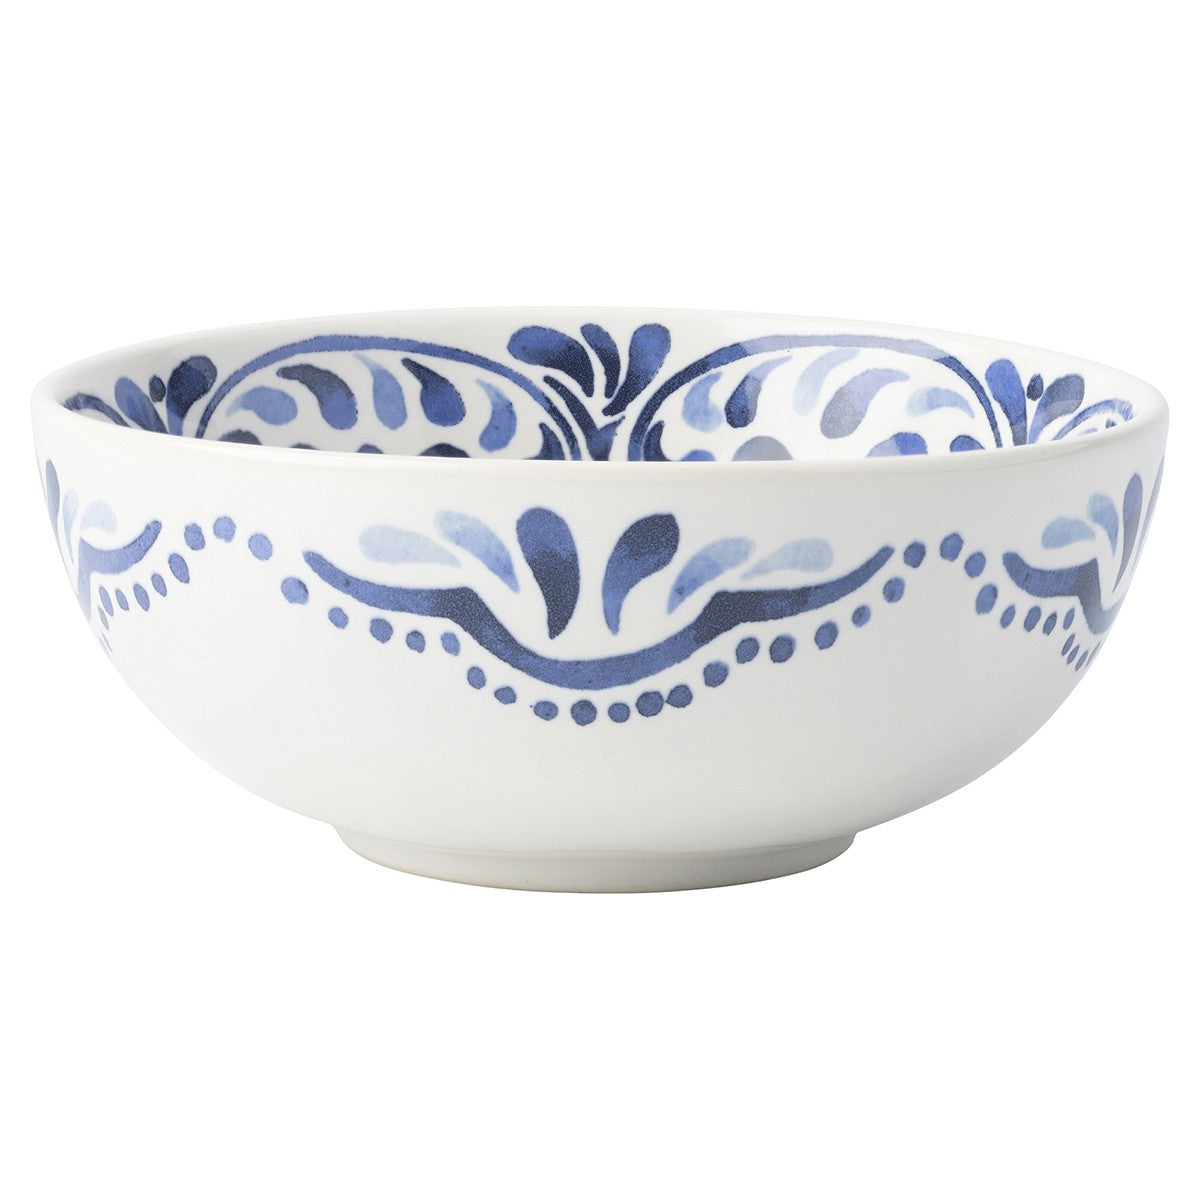 Iberian Cereal Bowl